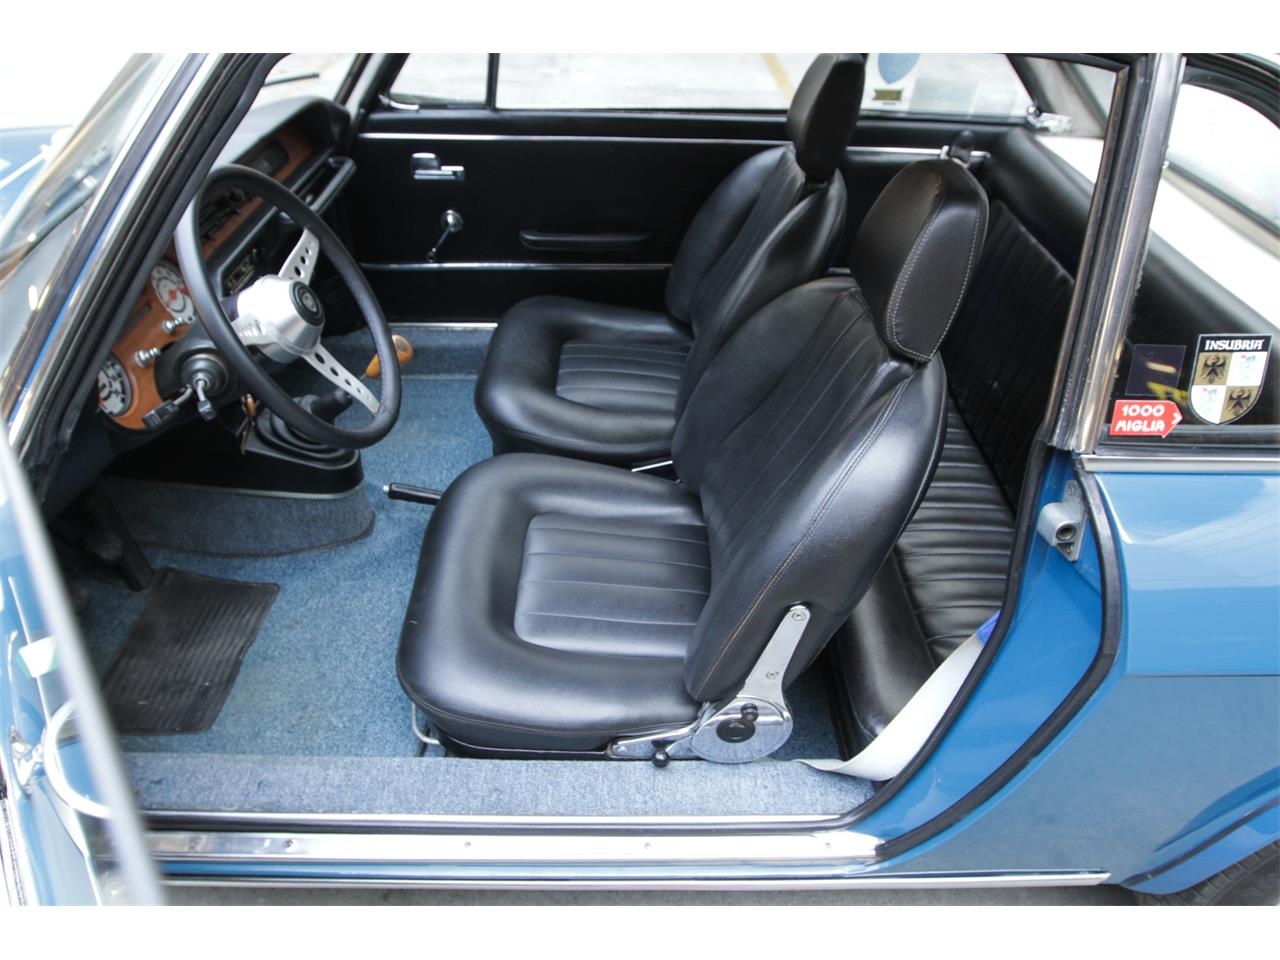 Large Picture of '75 Fulvia - $35,000.00 - OHR3